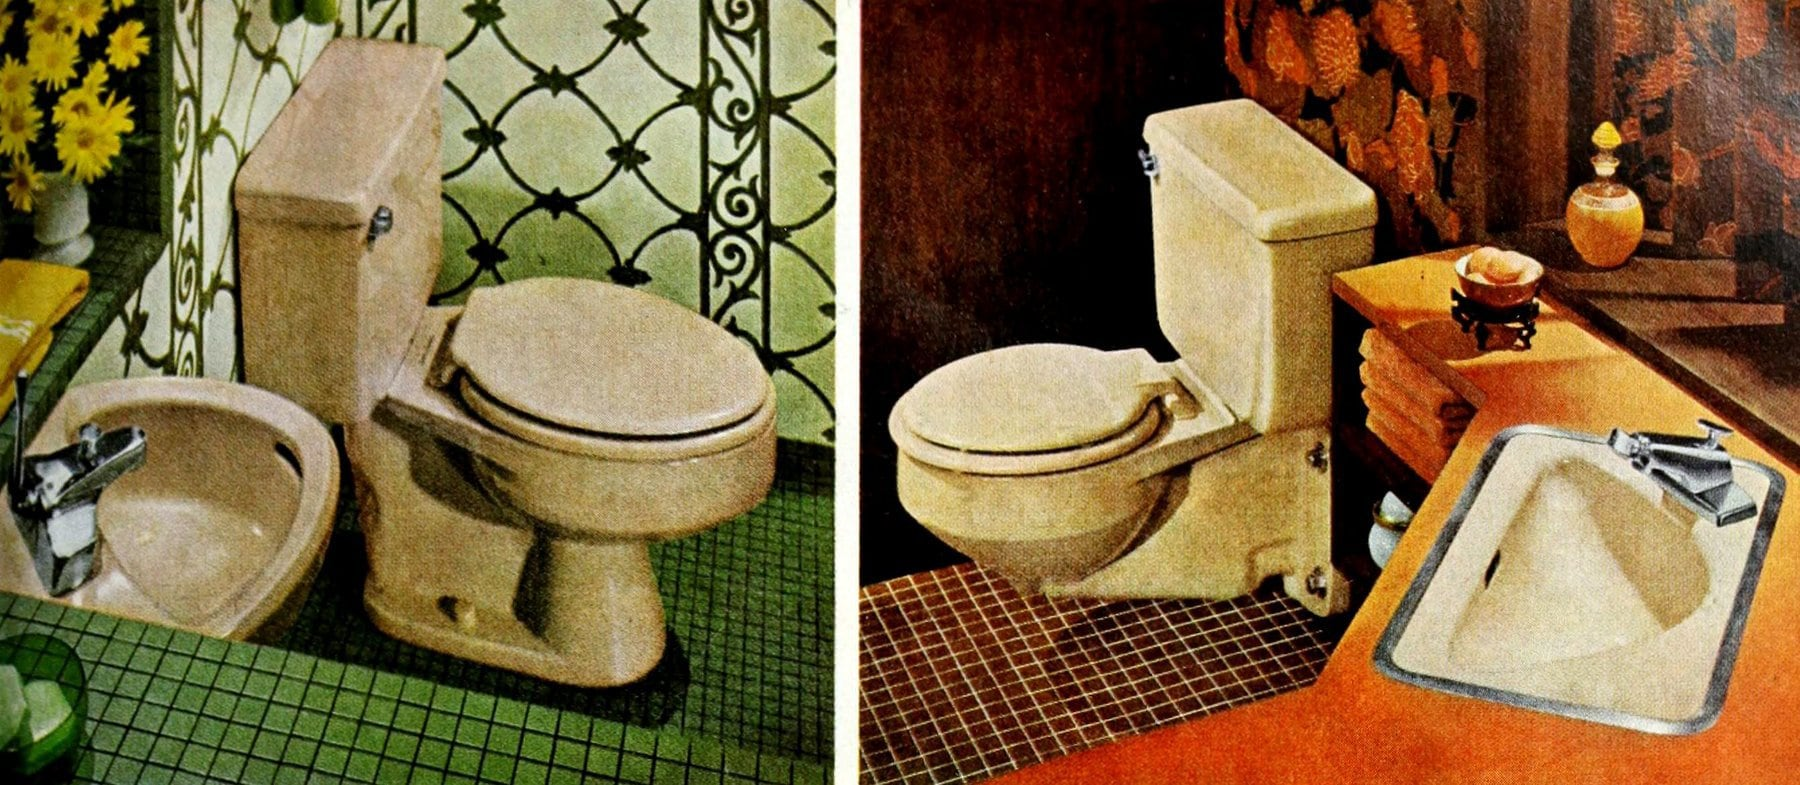 Two vintage powder rooms from 1964